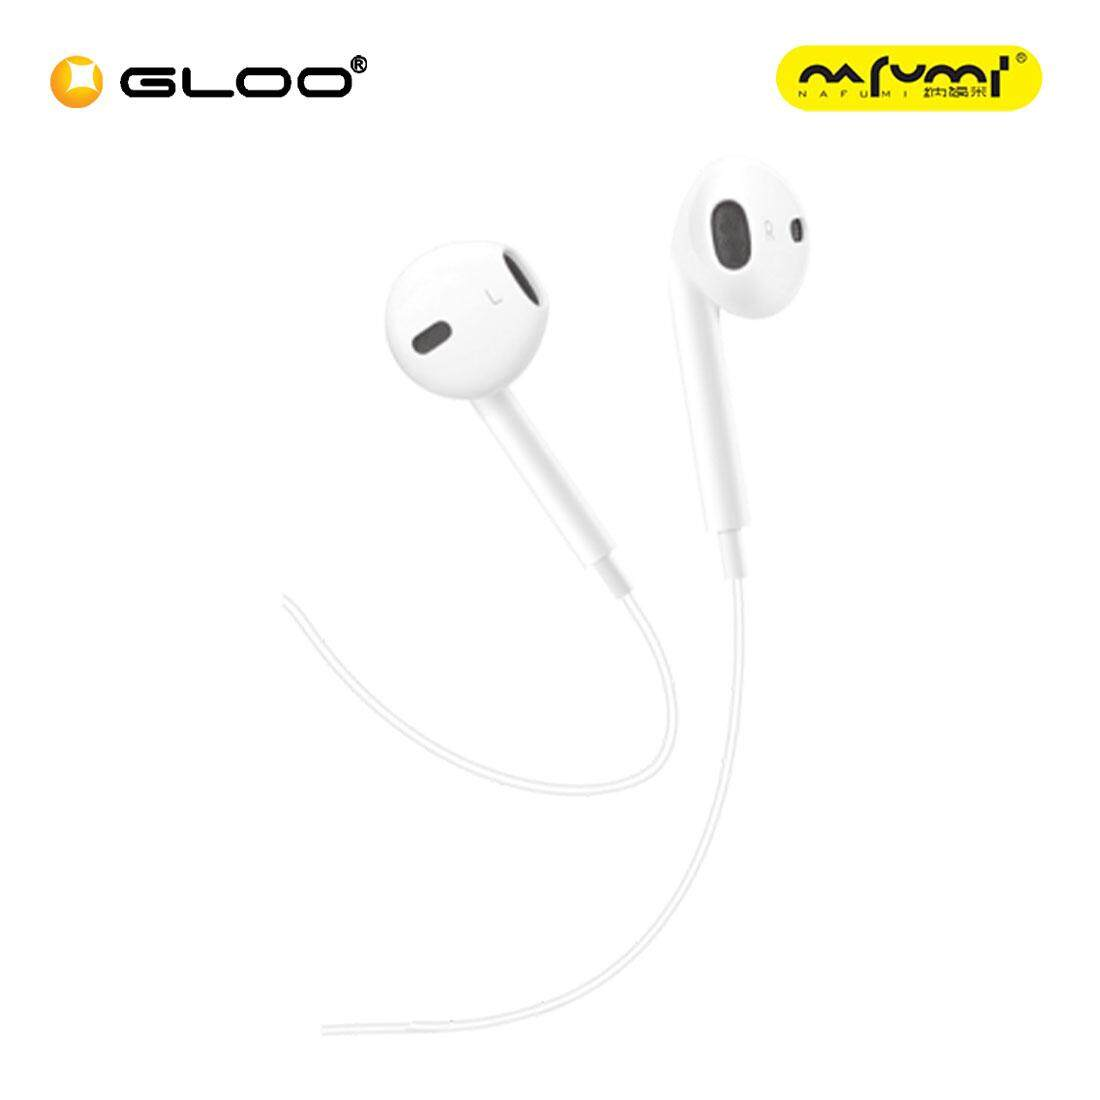 Nafumi X10 Earpiece